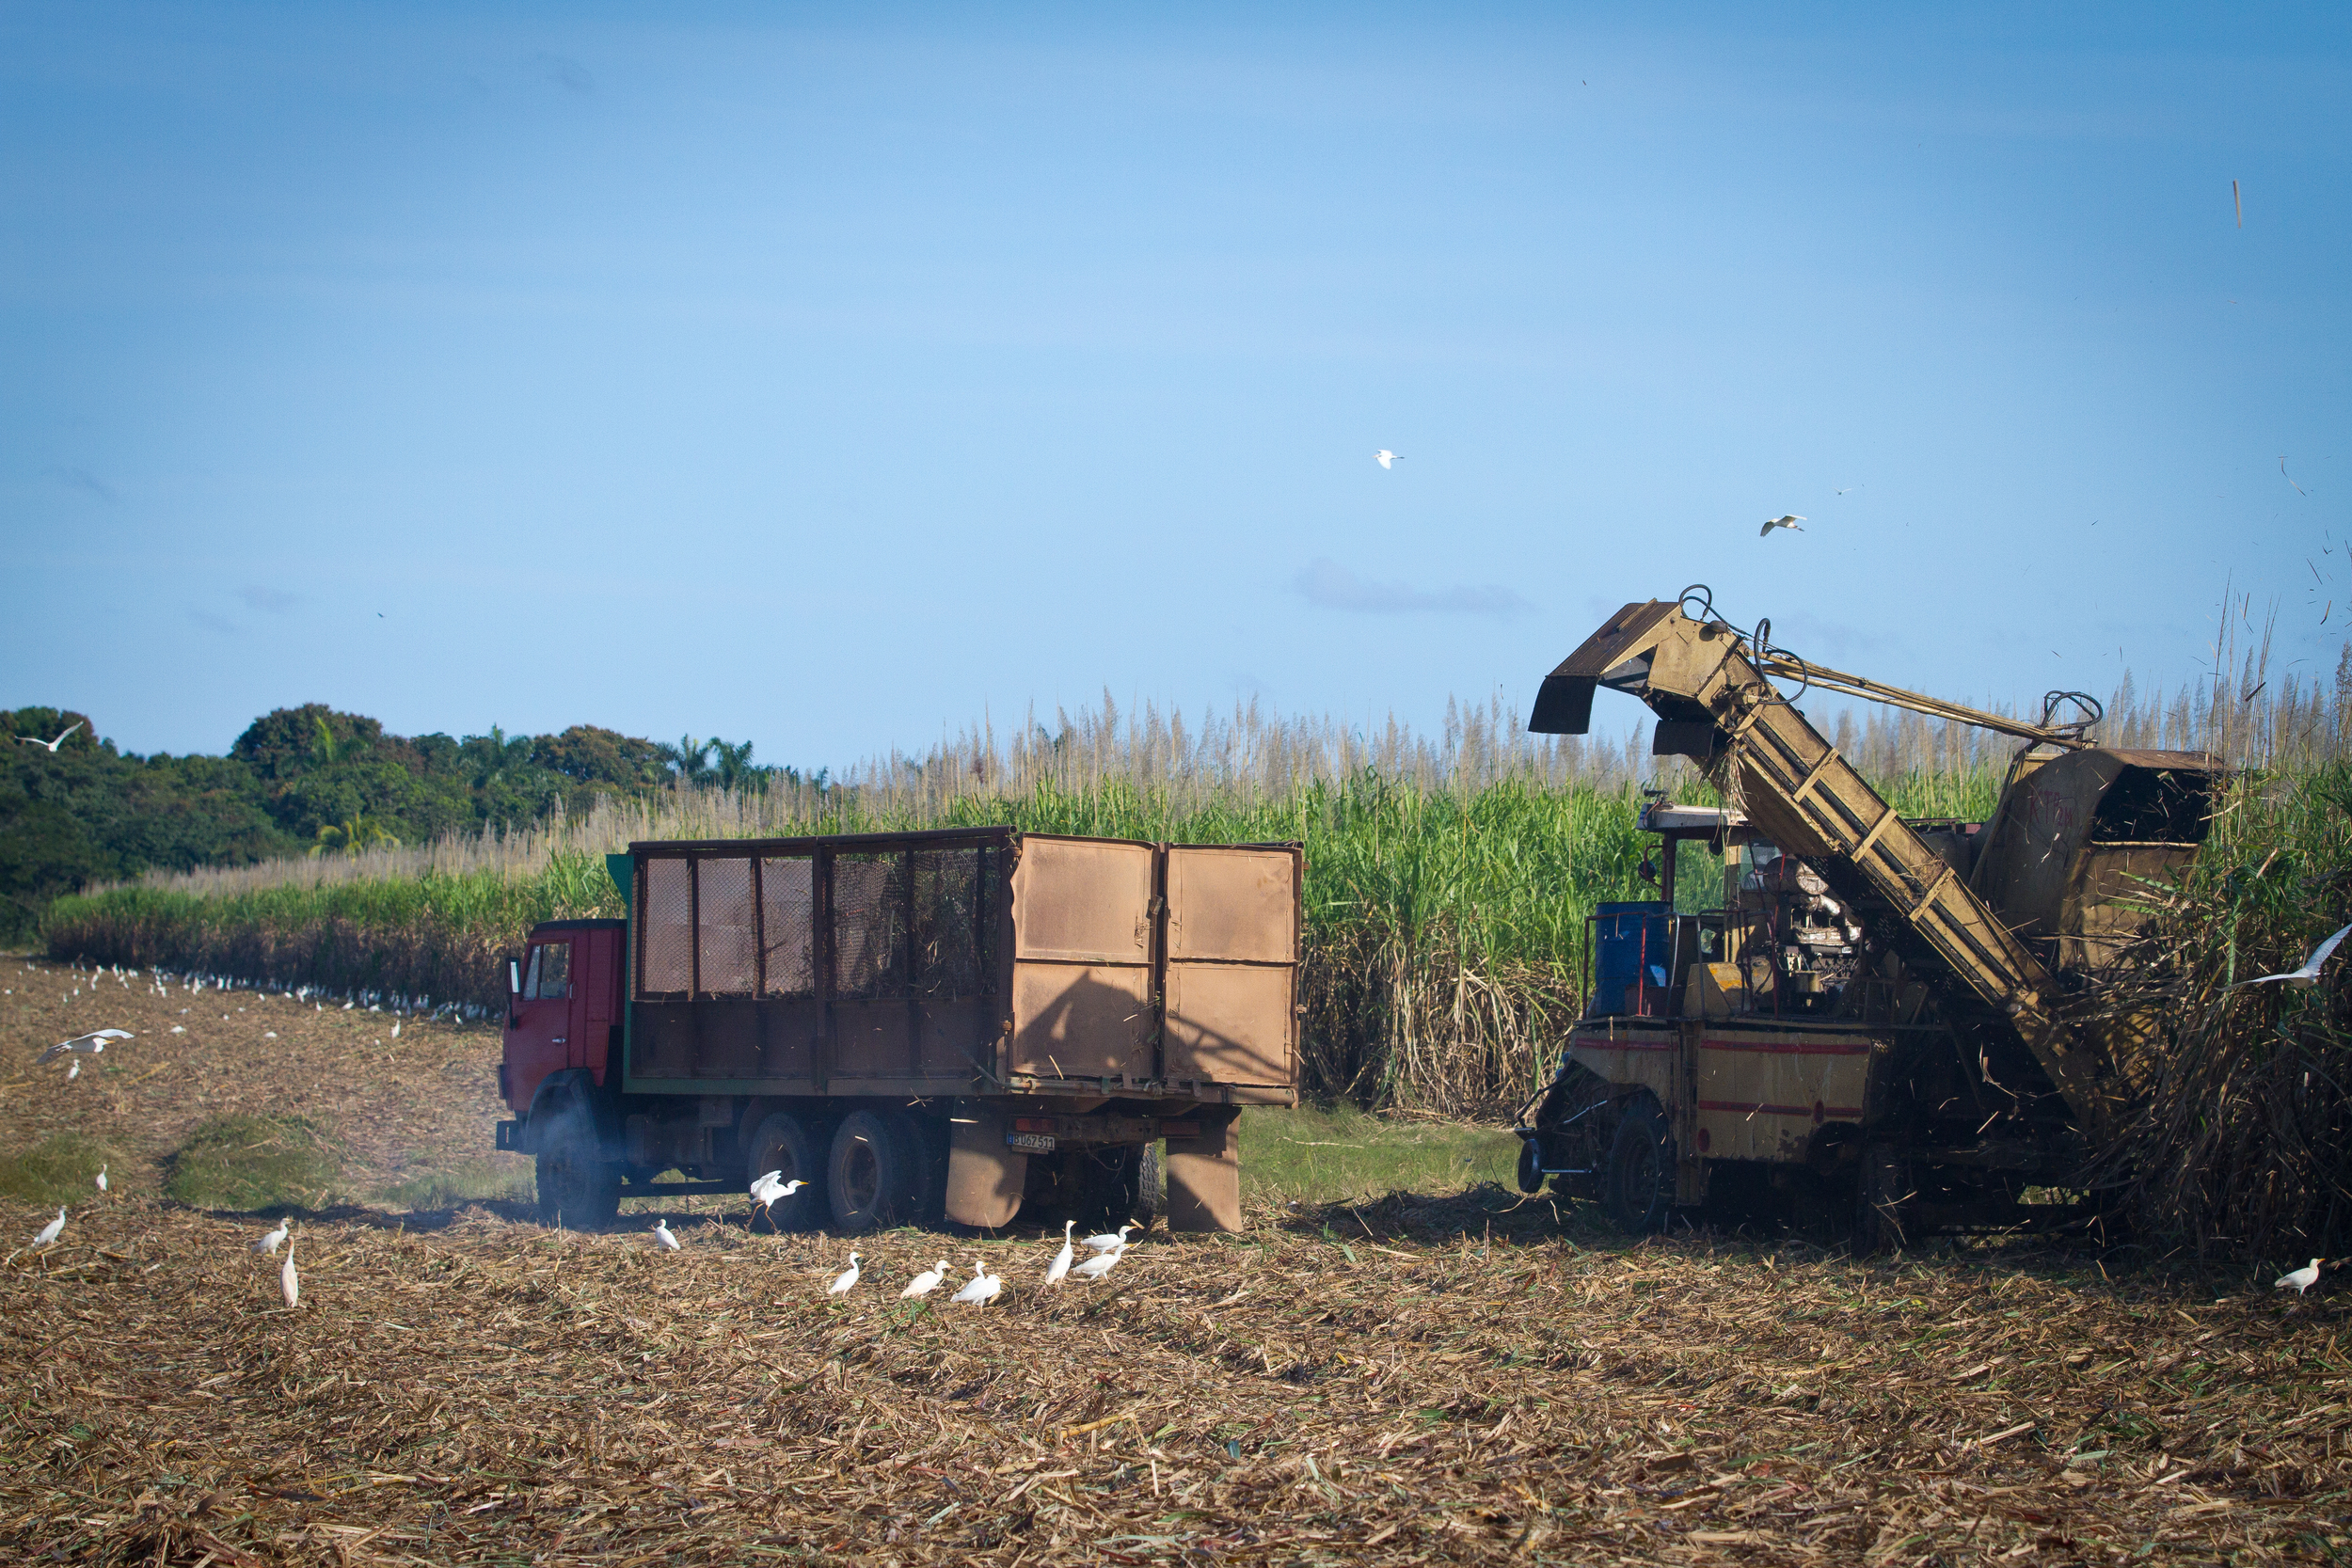 Harvesting sugar cane in the countryside, Cuba